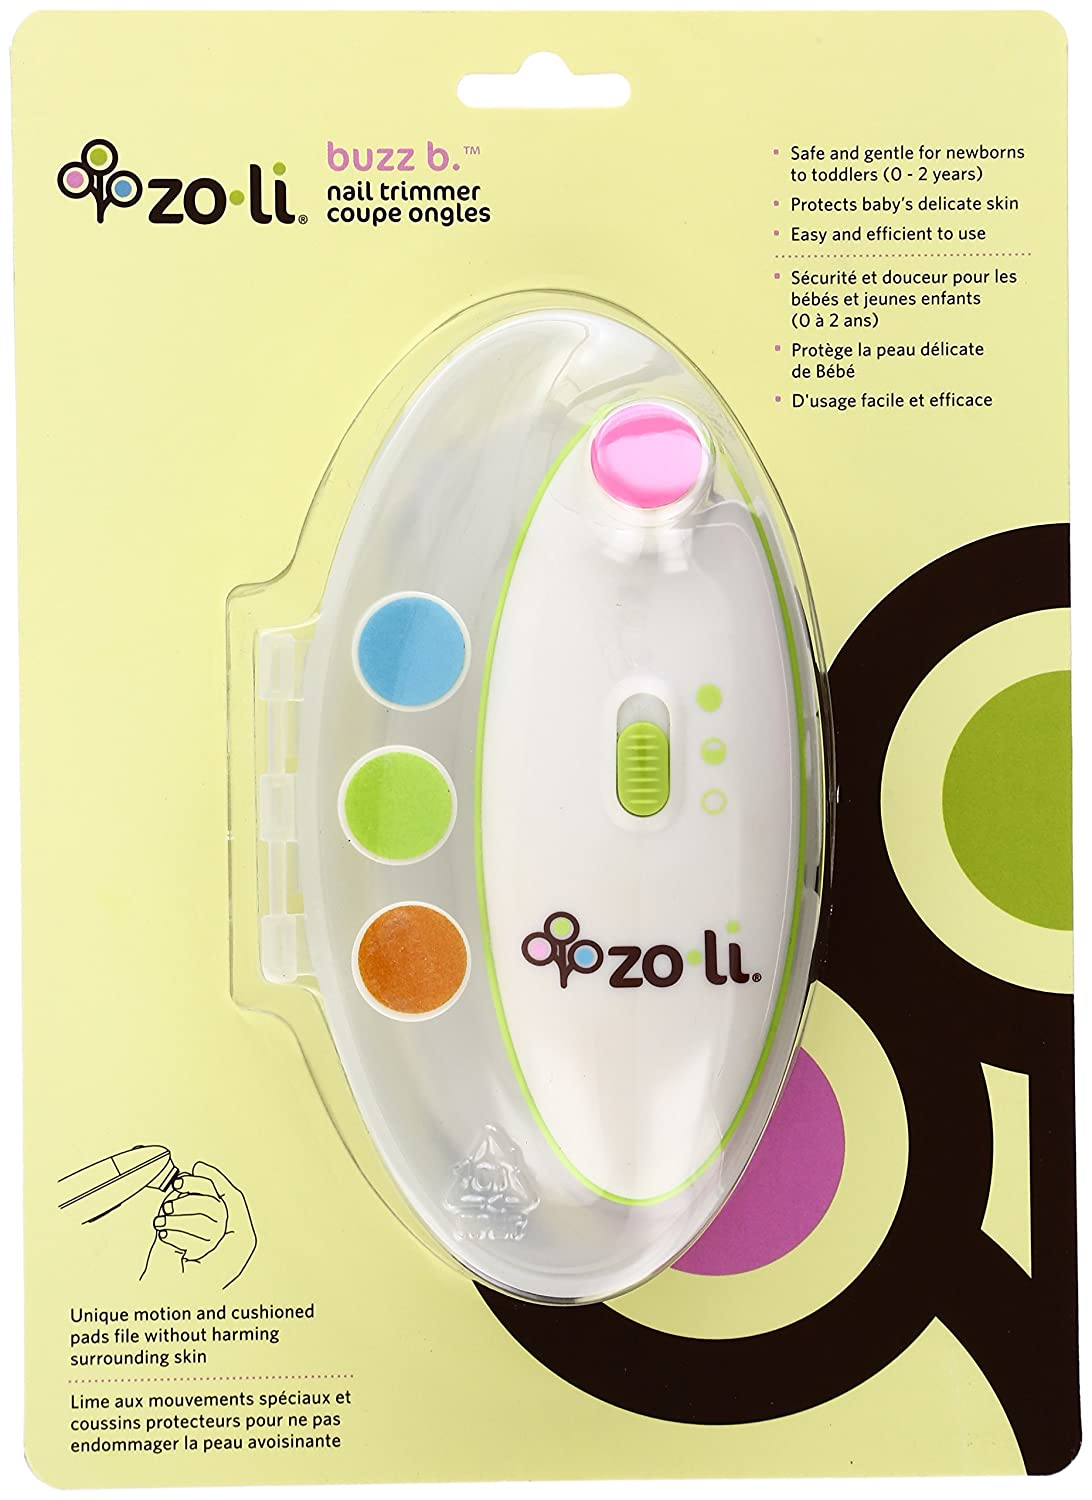 Amazon.com: Nail File Zoli (Nail Care Set) Ni-30006: Beauty